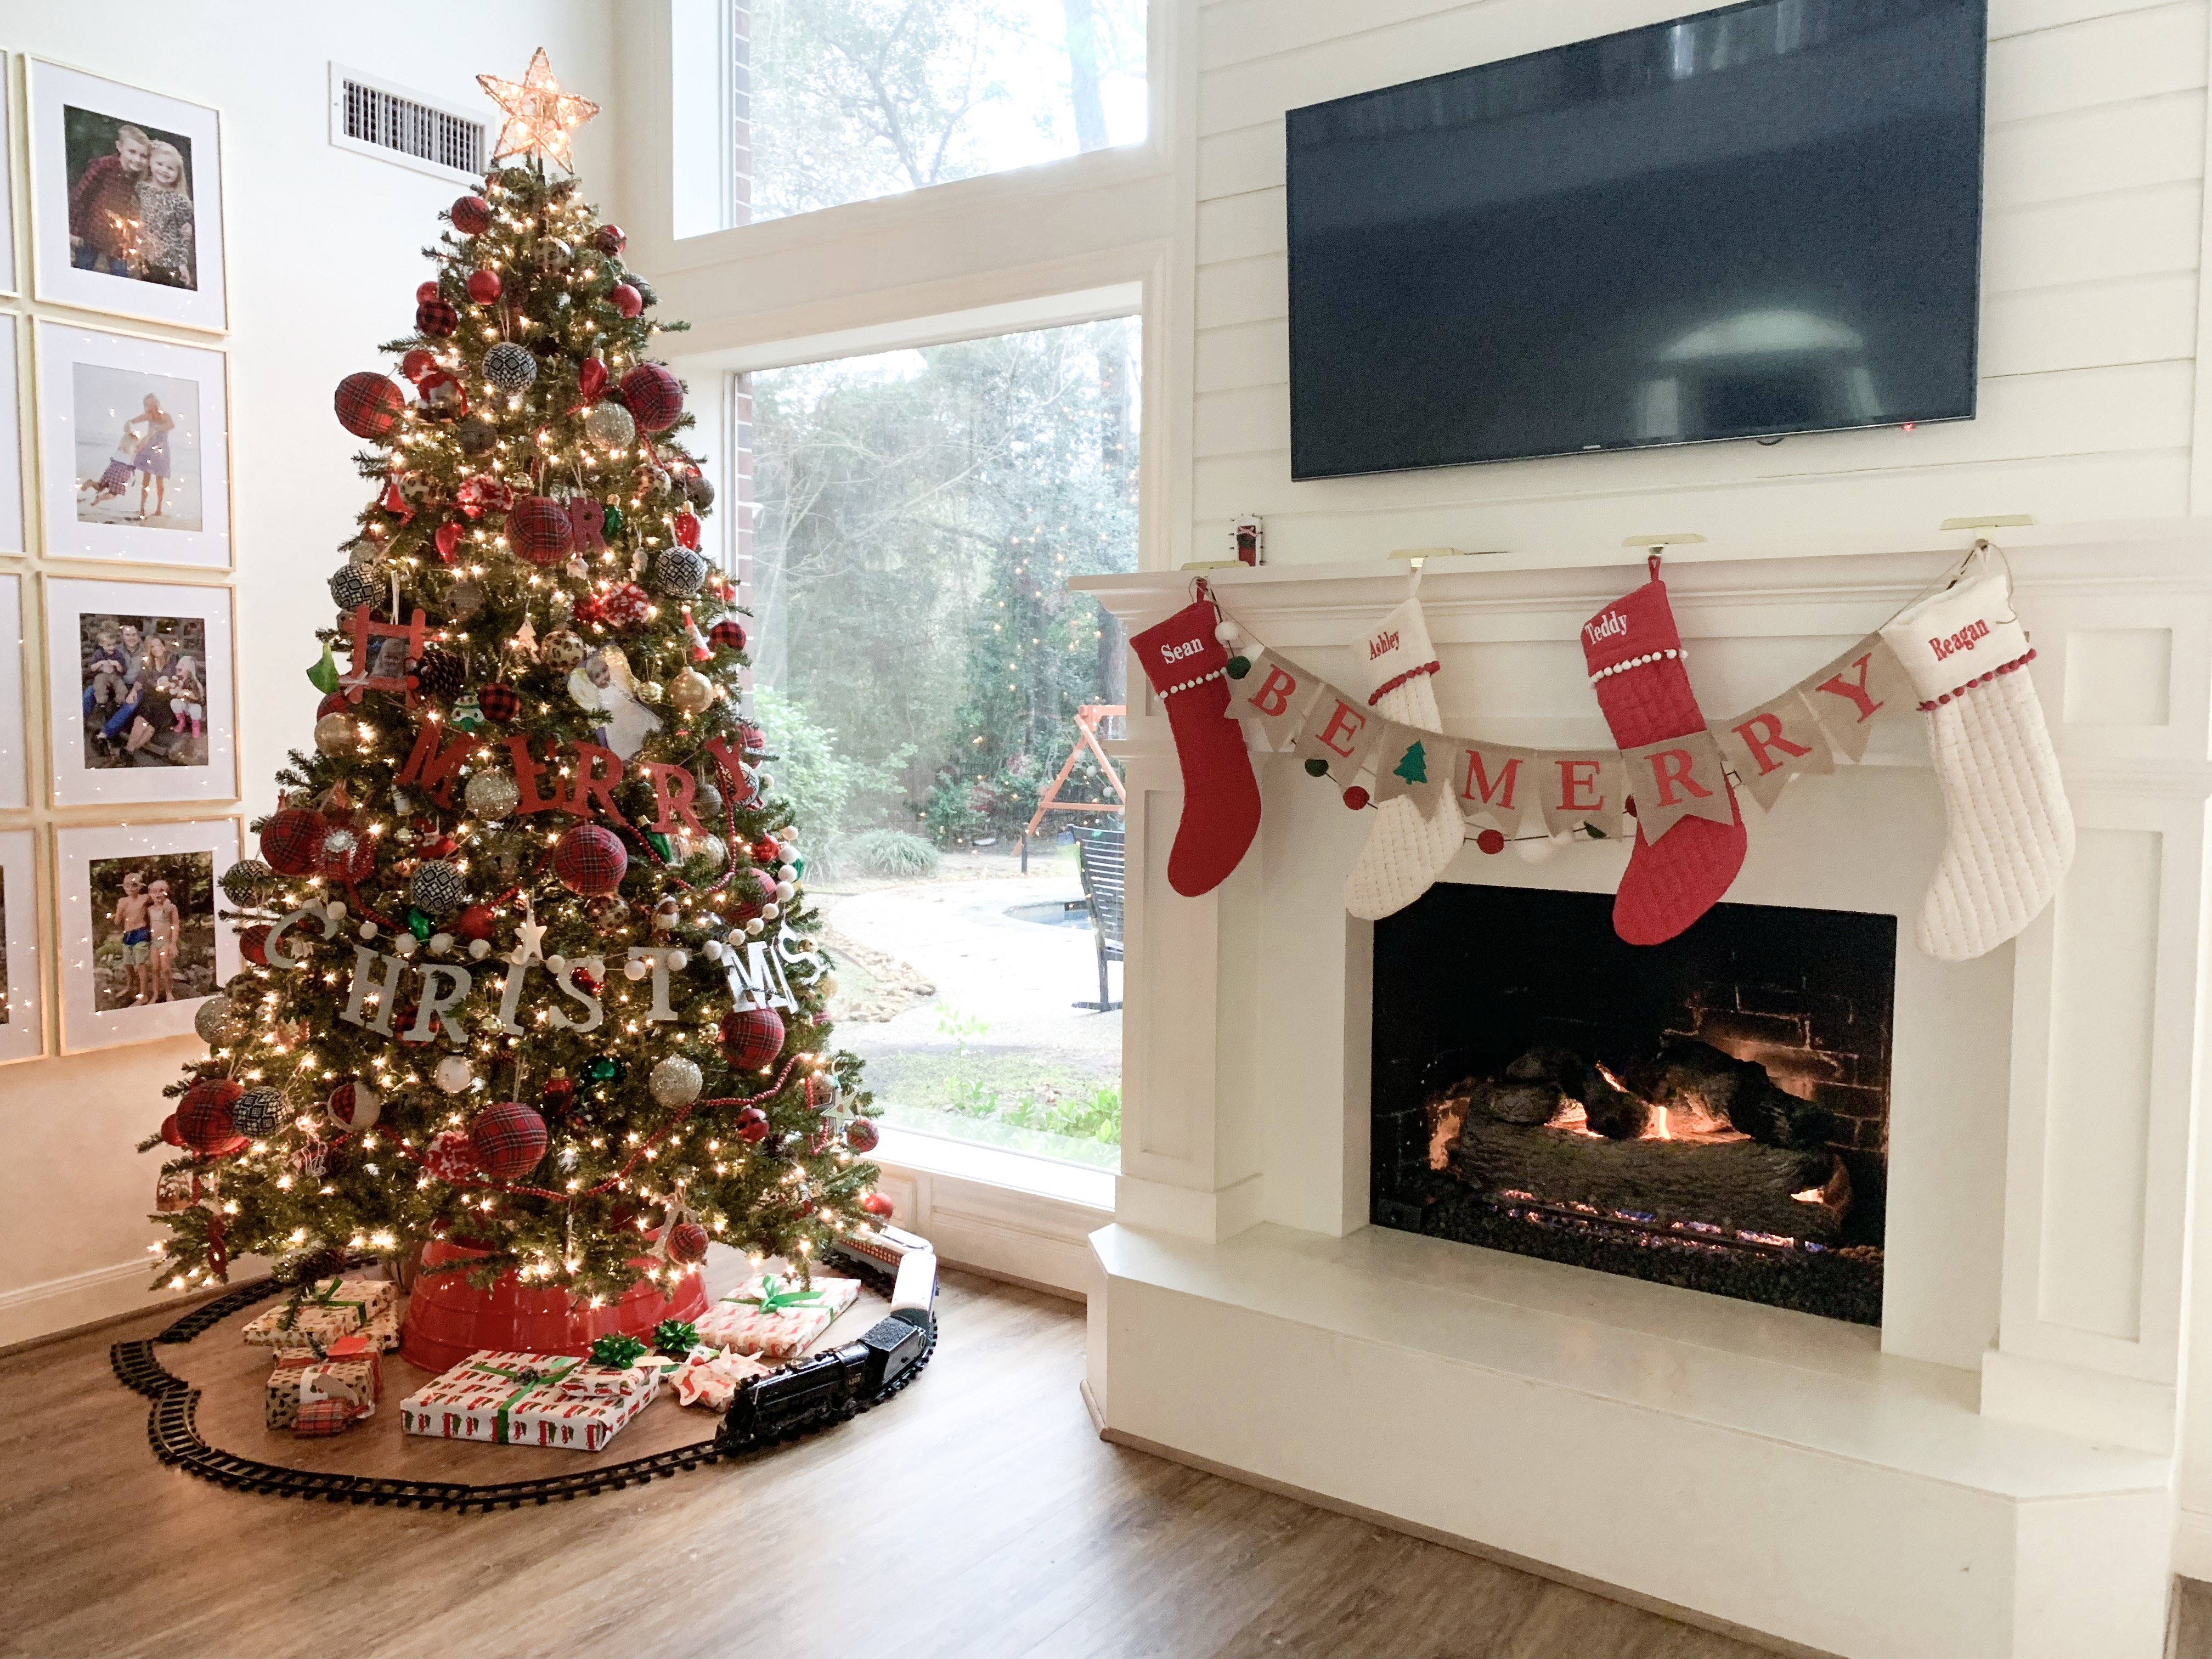 Top 5 Etsy favorites featured by popular Houston life and style blogger, Fancy Ashley: image of holiday banners available on Etsy